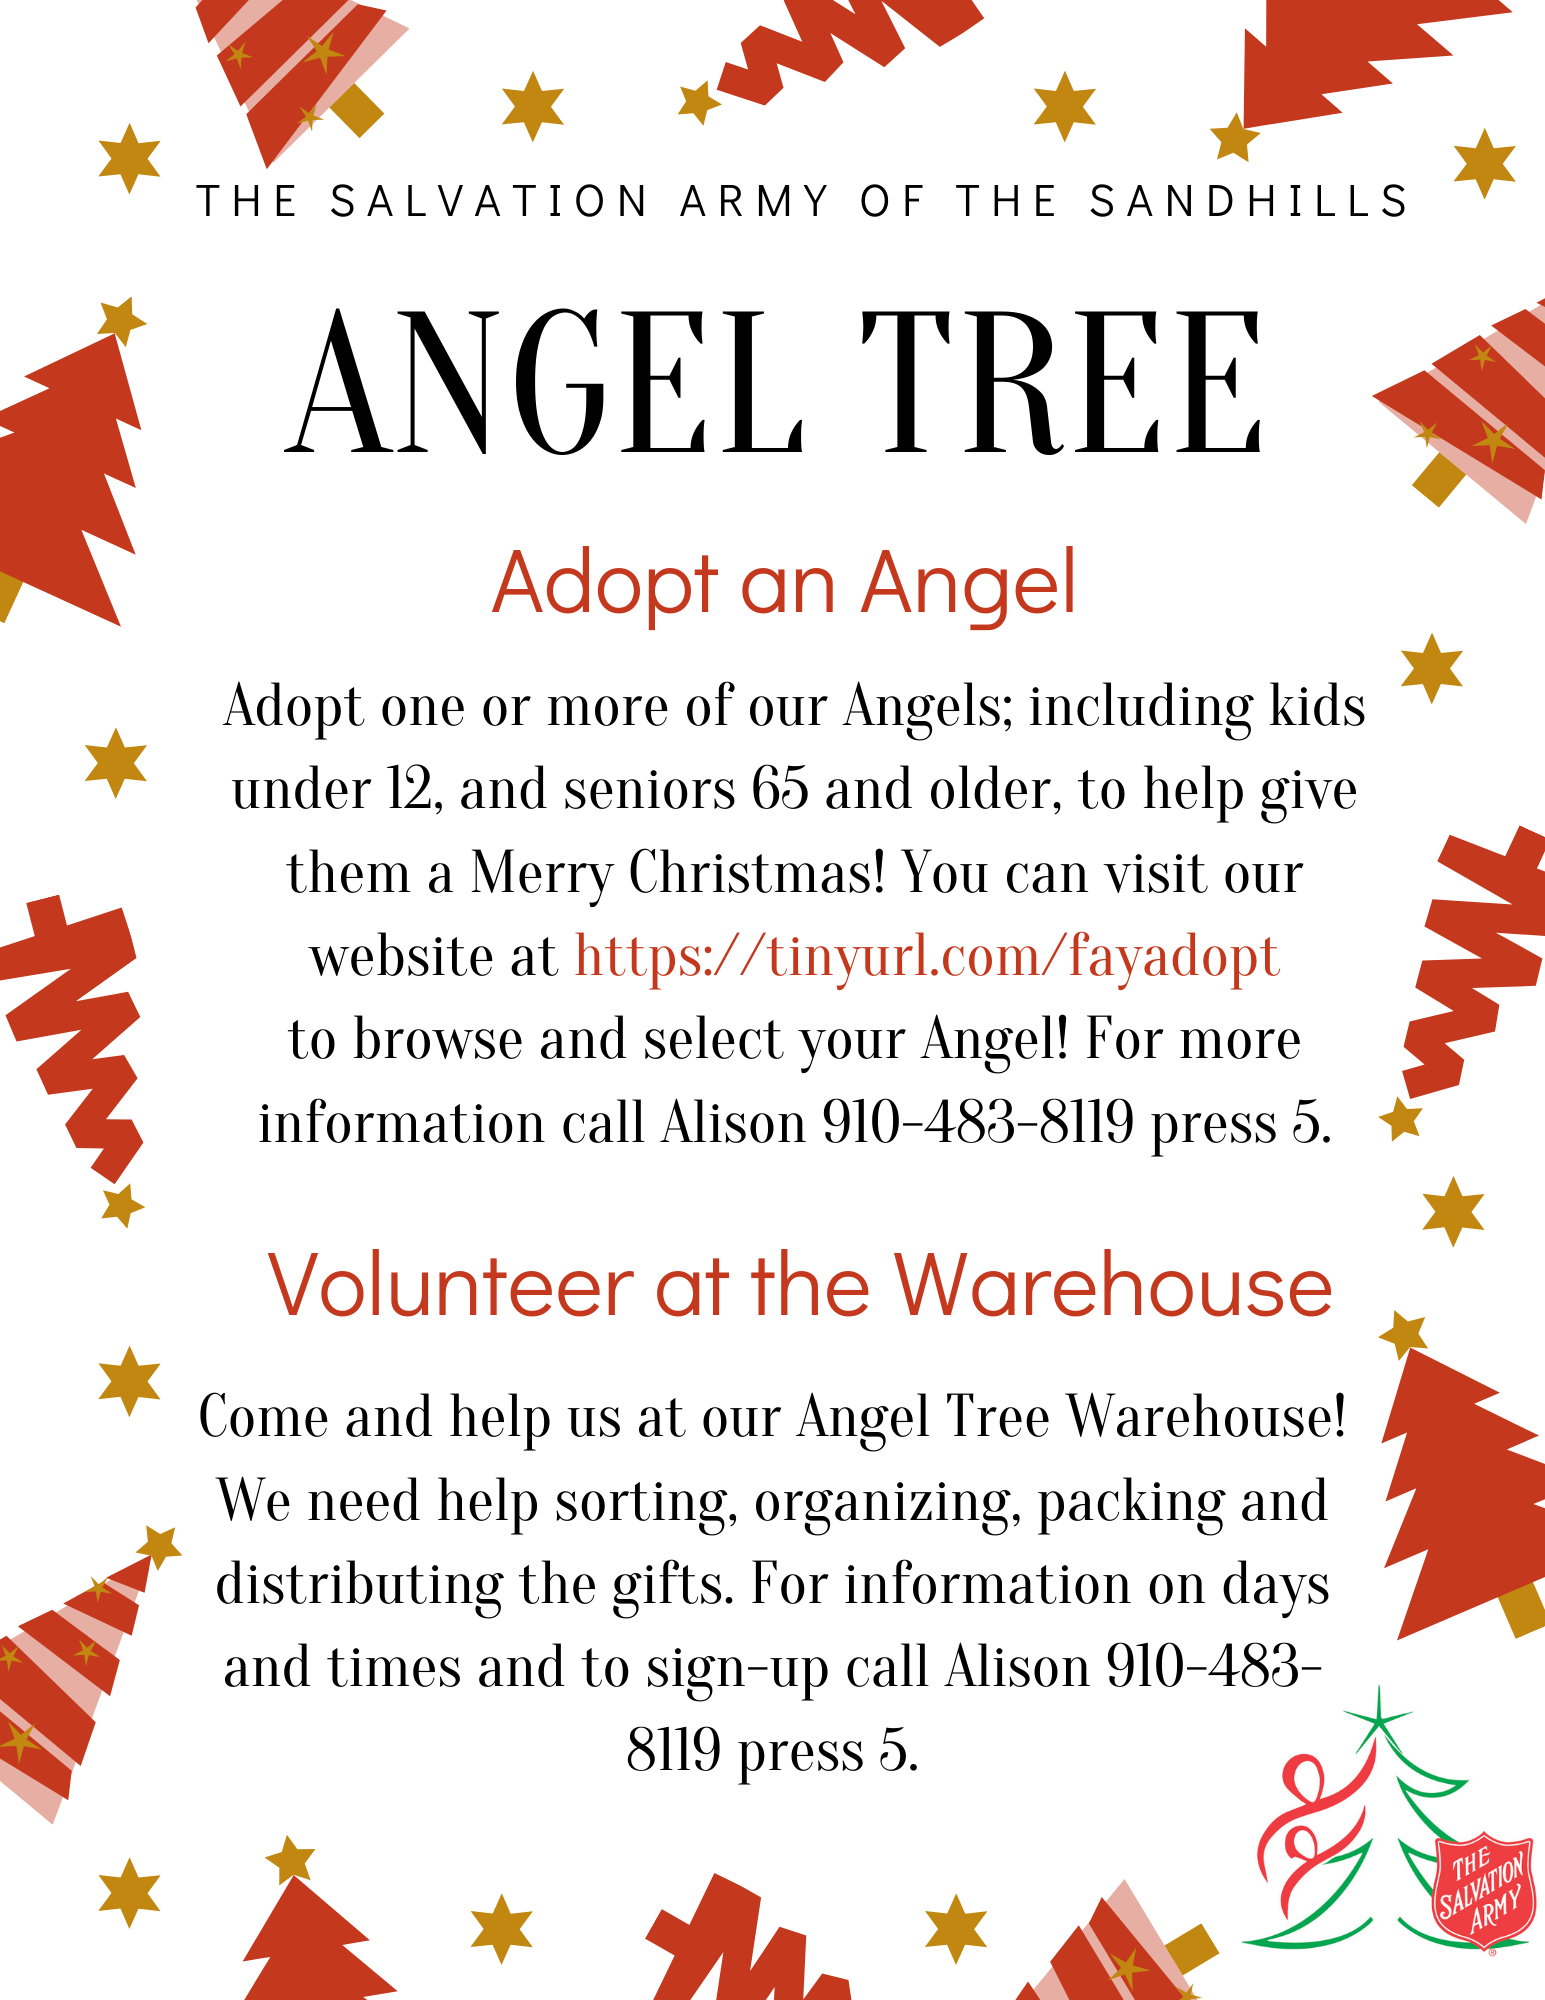 The Salvation Army Warehouse Volunteers and Angel Tree